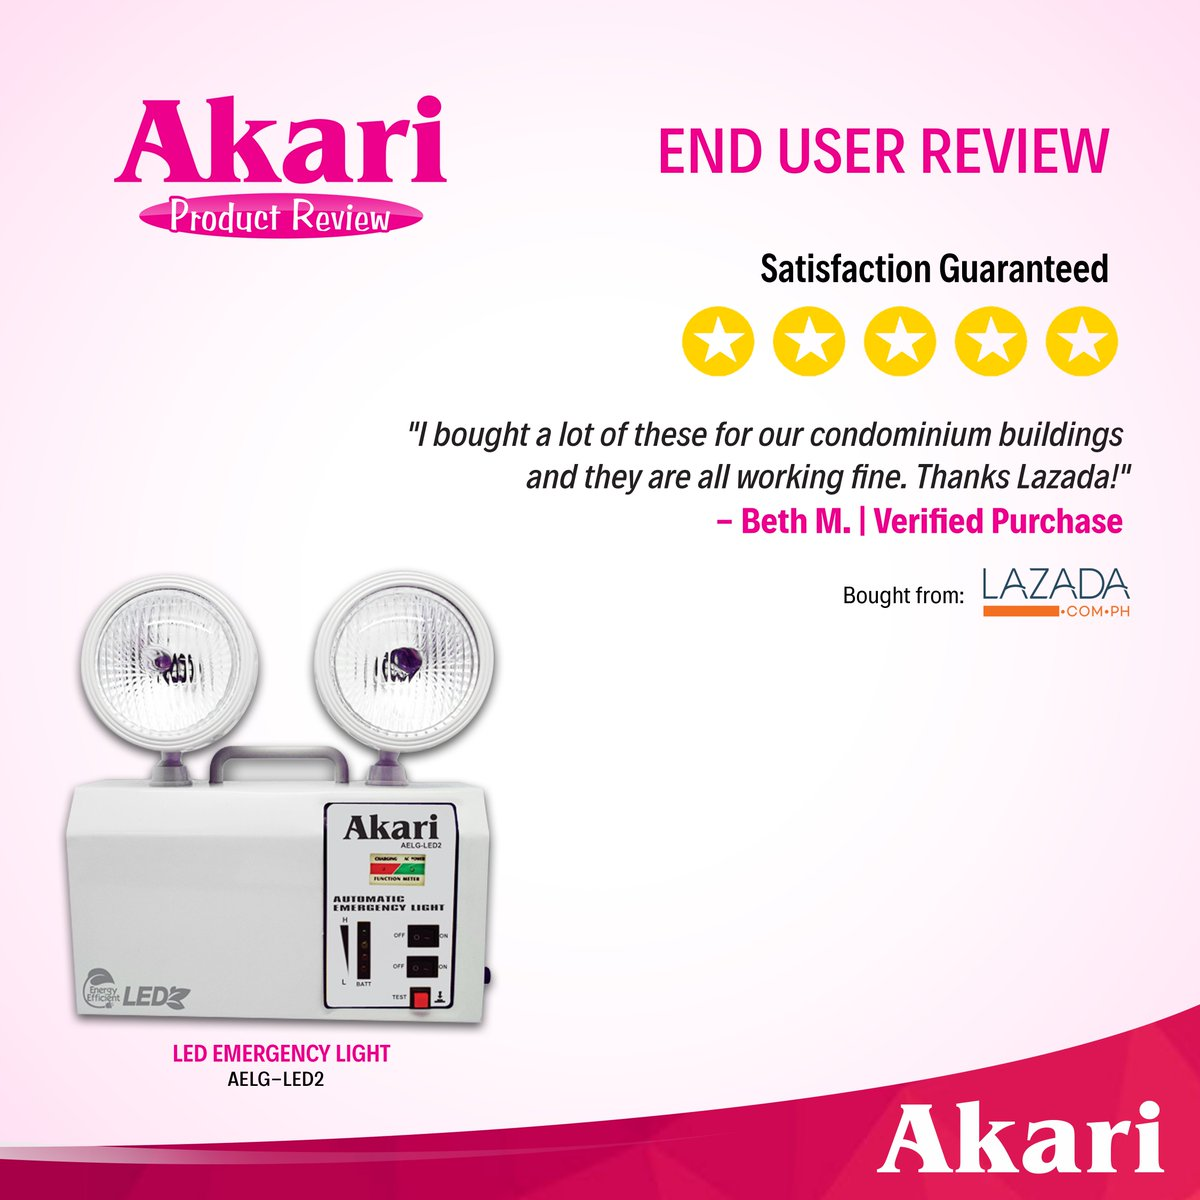 Akari Lighting On Twitter Looking For Reliable Emergency Lights Automatic Led Light Chooseakari Guaranteed High Quality As Vouched By This Satisfied User